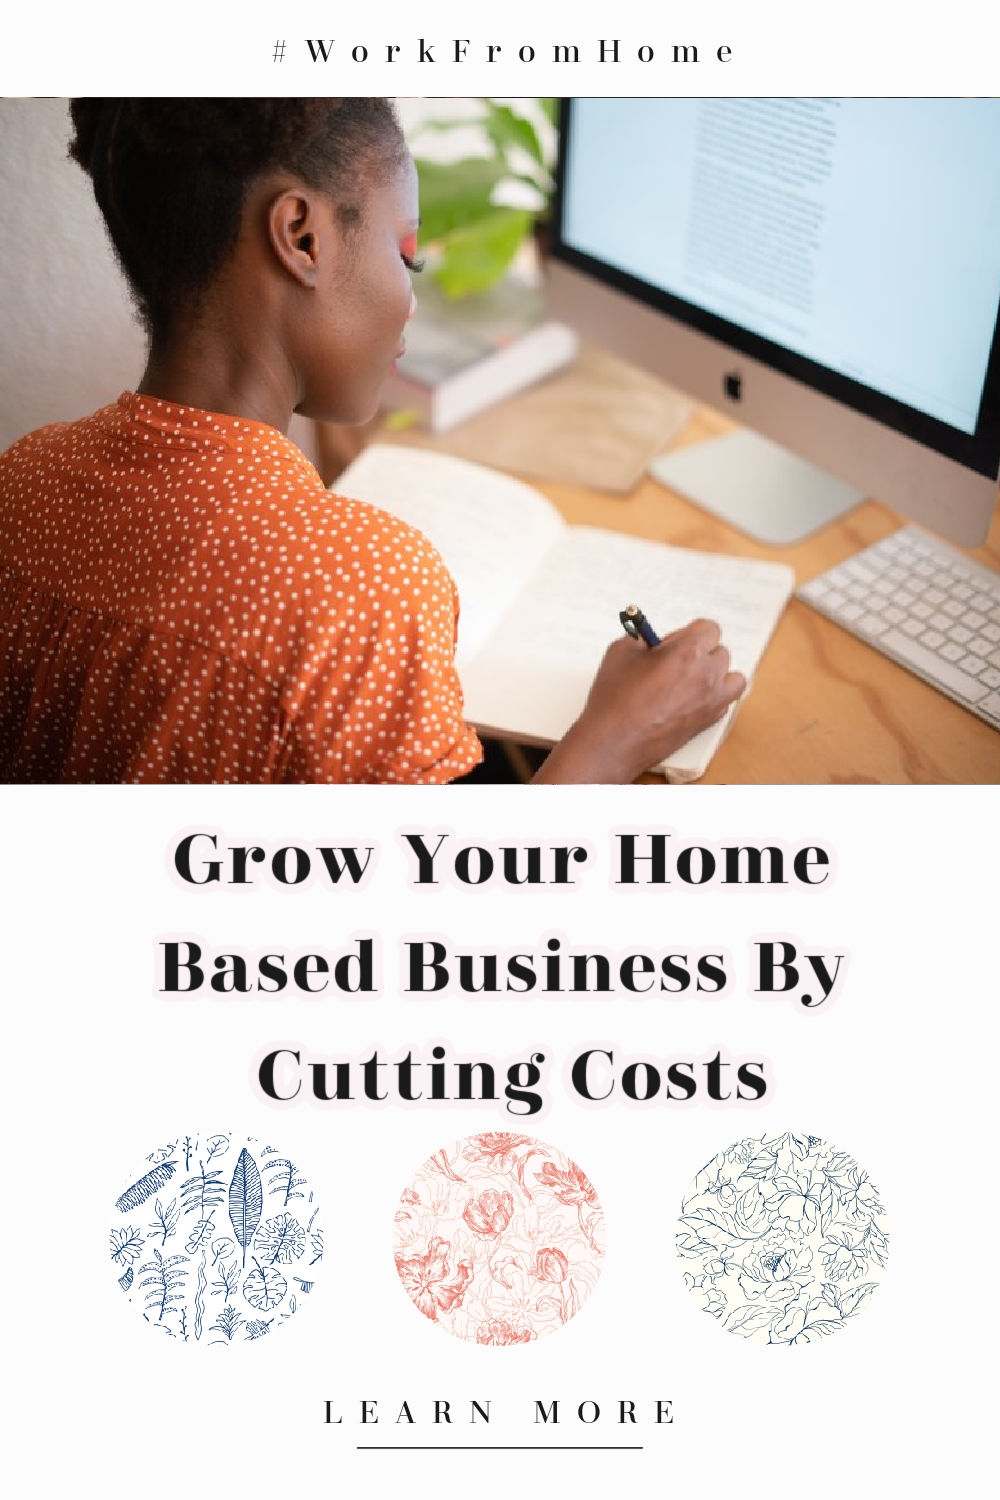 Grow your home based business.